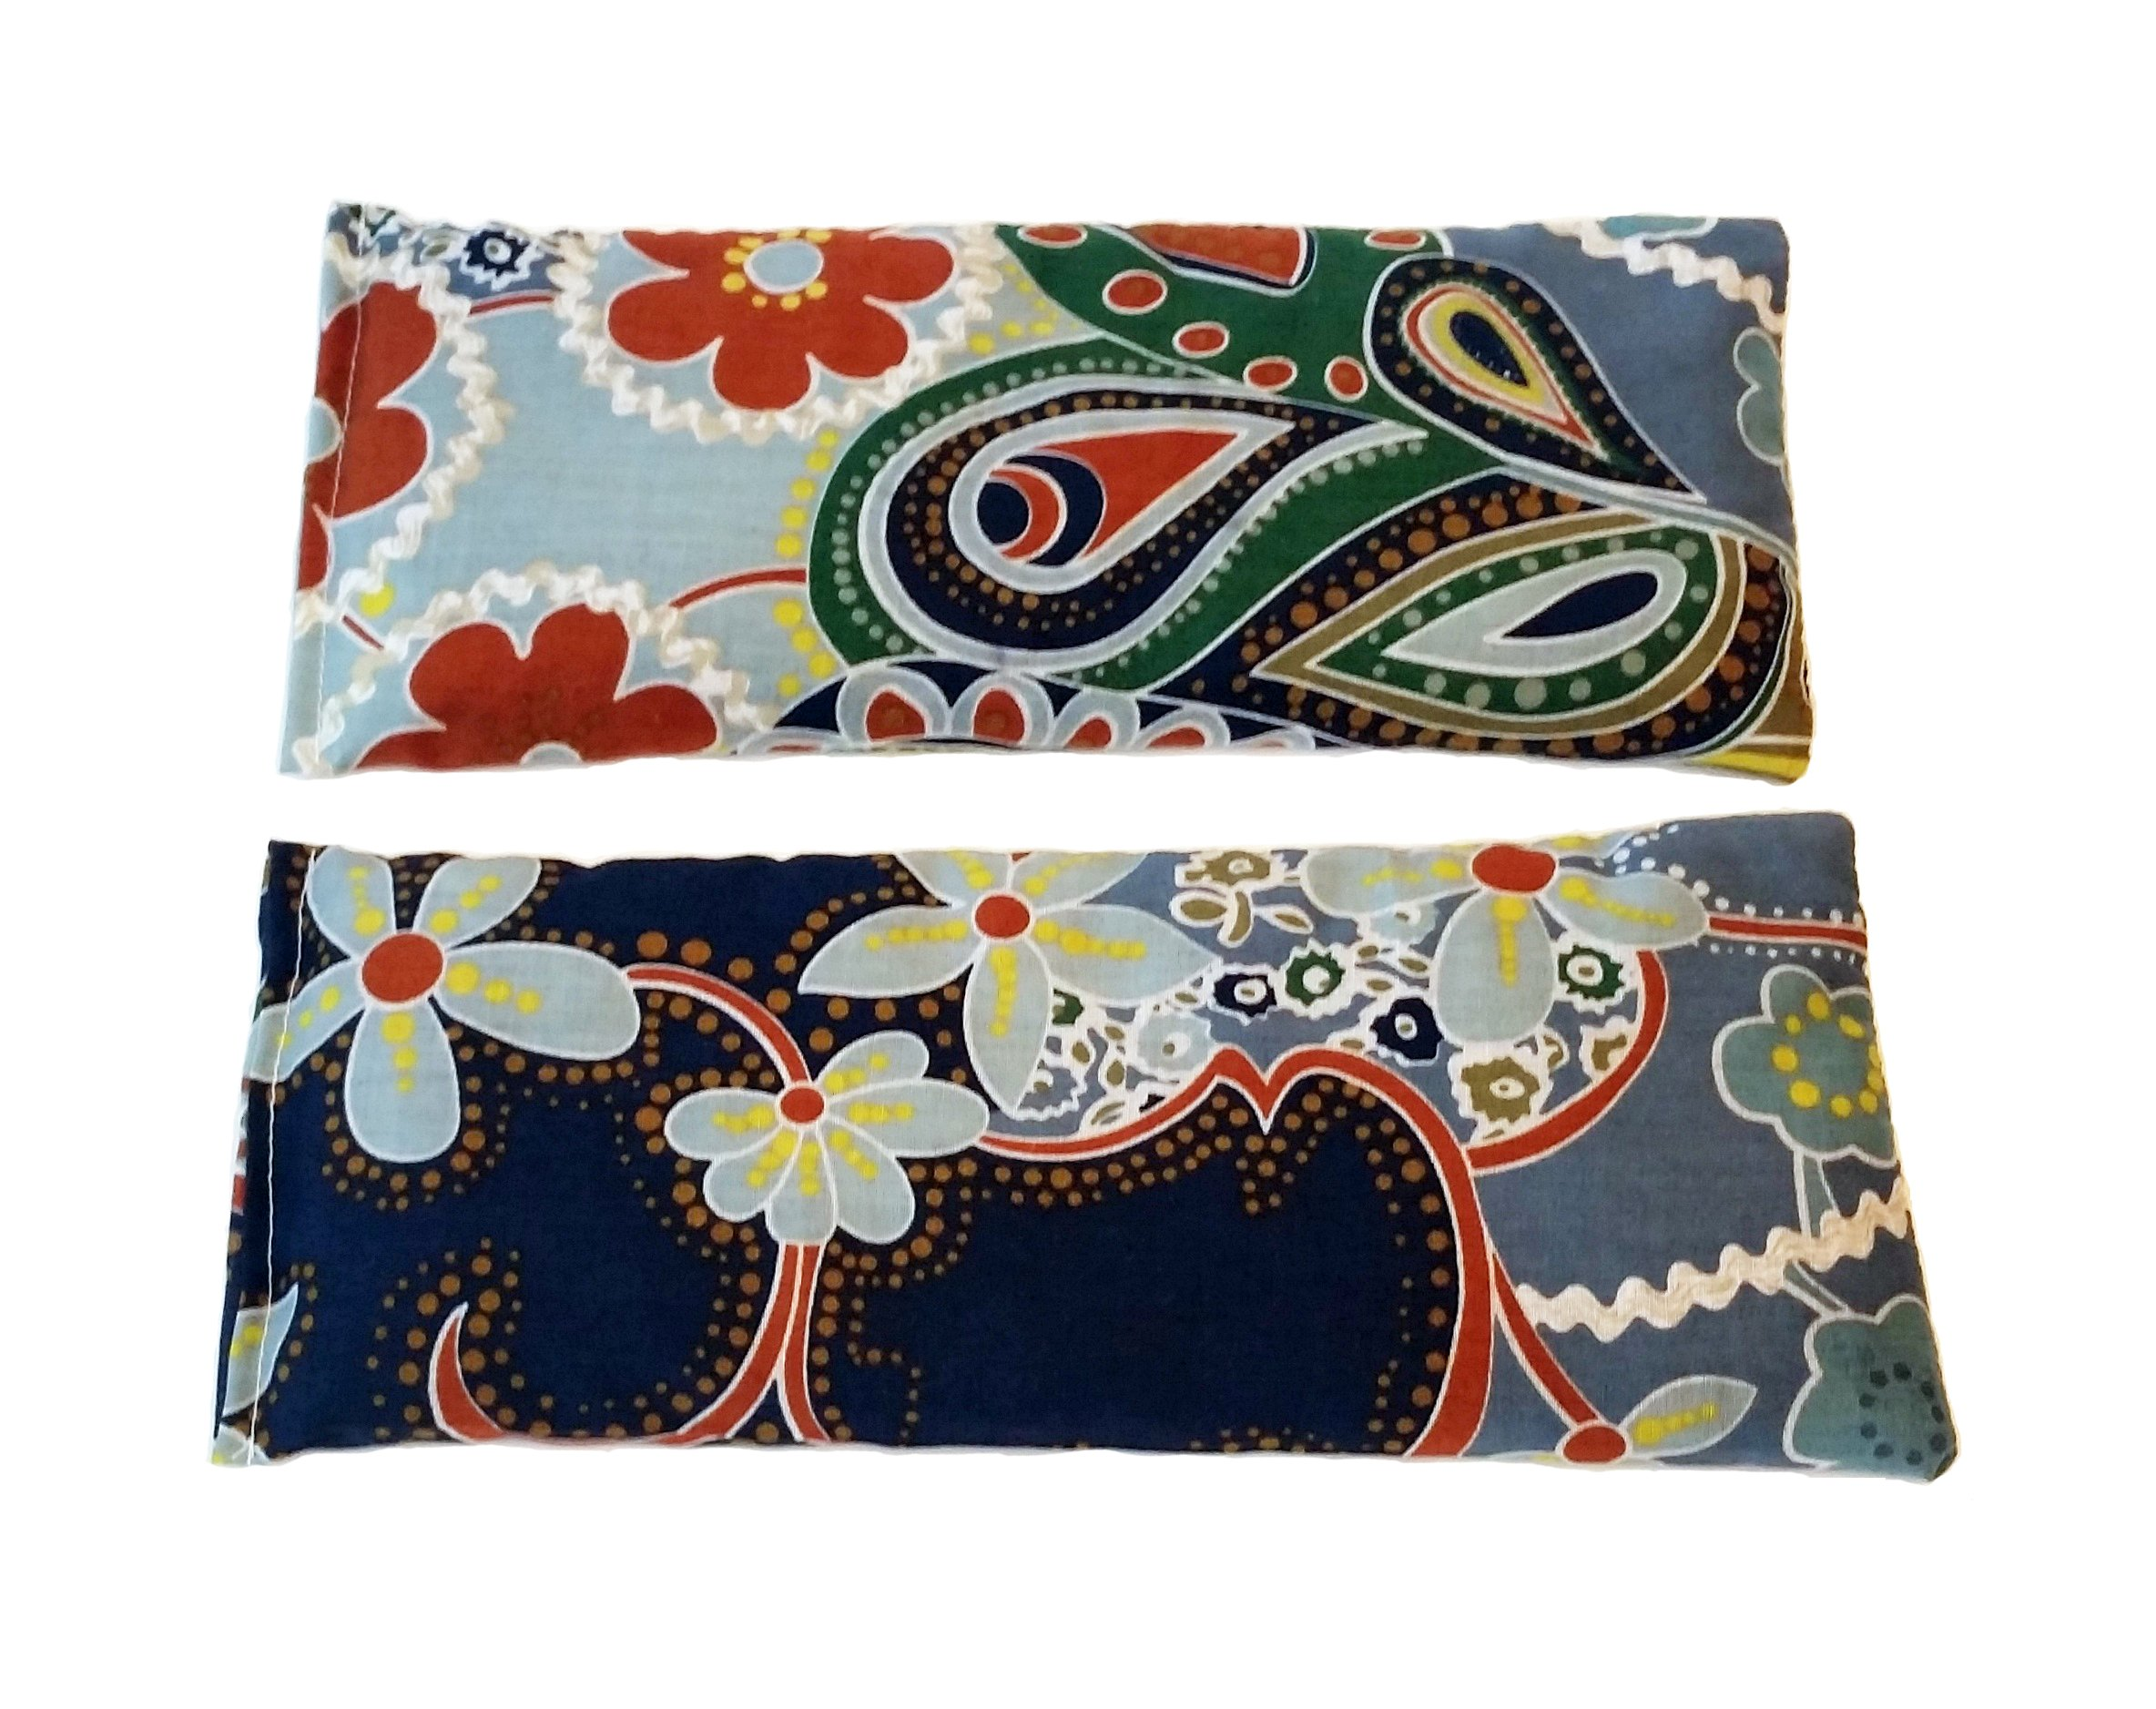 2 Hot/Cold Flaxseed Eye Pillows. 2 Microwavable Eye Pillows for Cold or Hot Therapy. Relieve Puffy or Dry Eyes. Eye Pads For Relaxing Warmth, Cooling Relief. Eye Mask for Sleep, Yoga. (Floral)